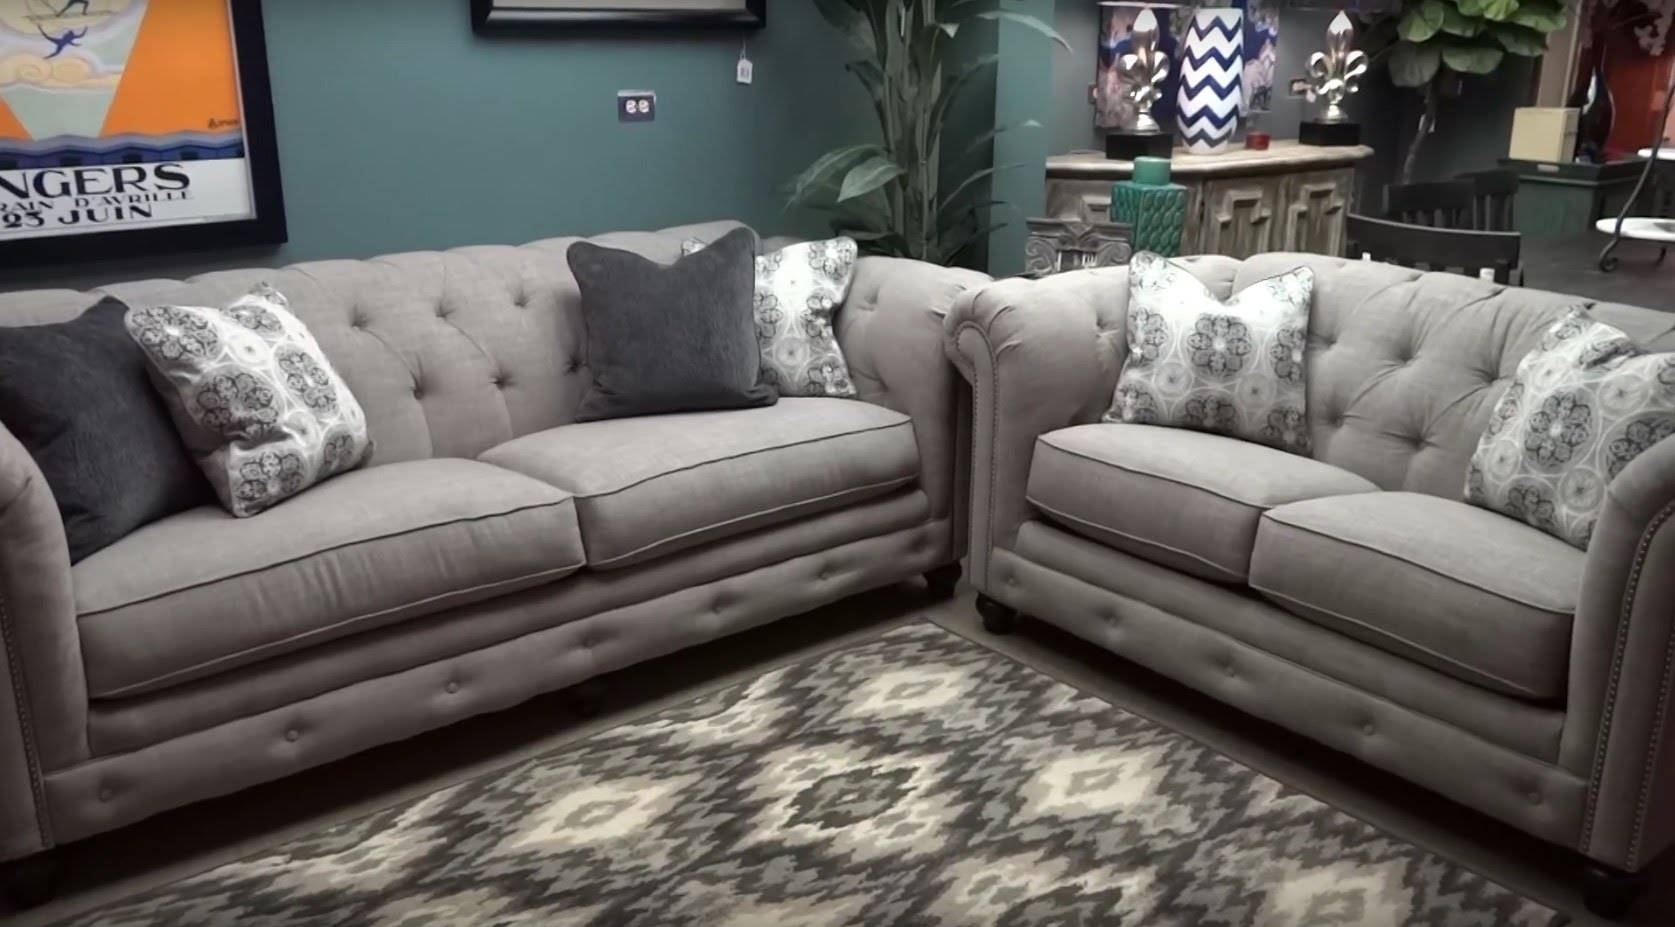 Ashley Furniture Azlyn Sepia Tufted Sofa & Loveseat 994 Review With Ashley Tufted Sofa (View 1 of 30)